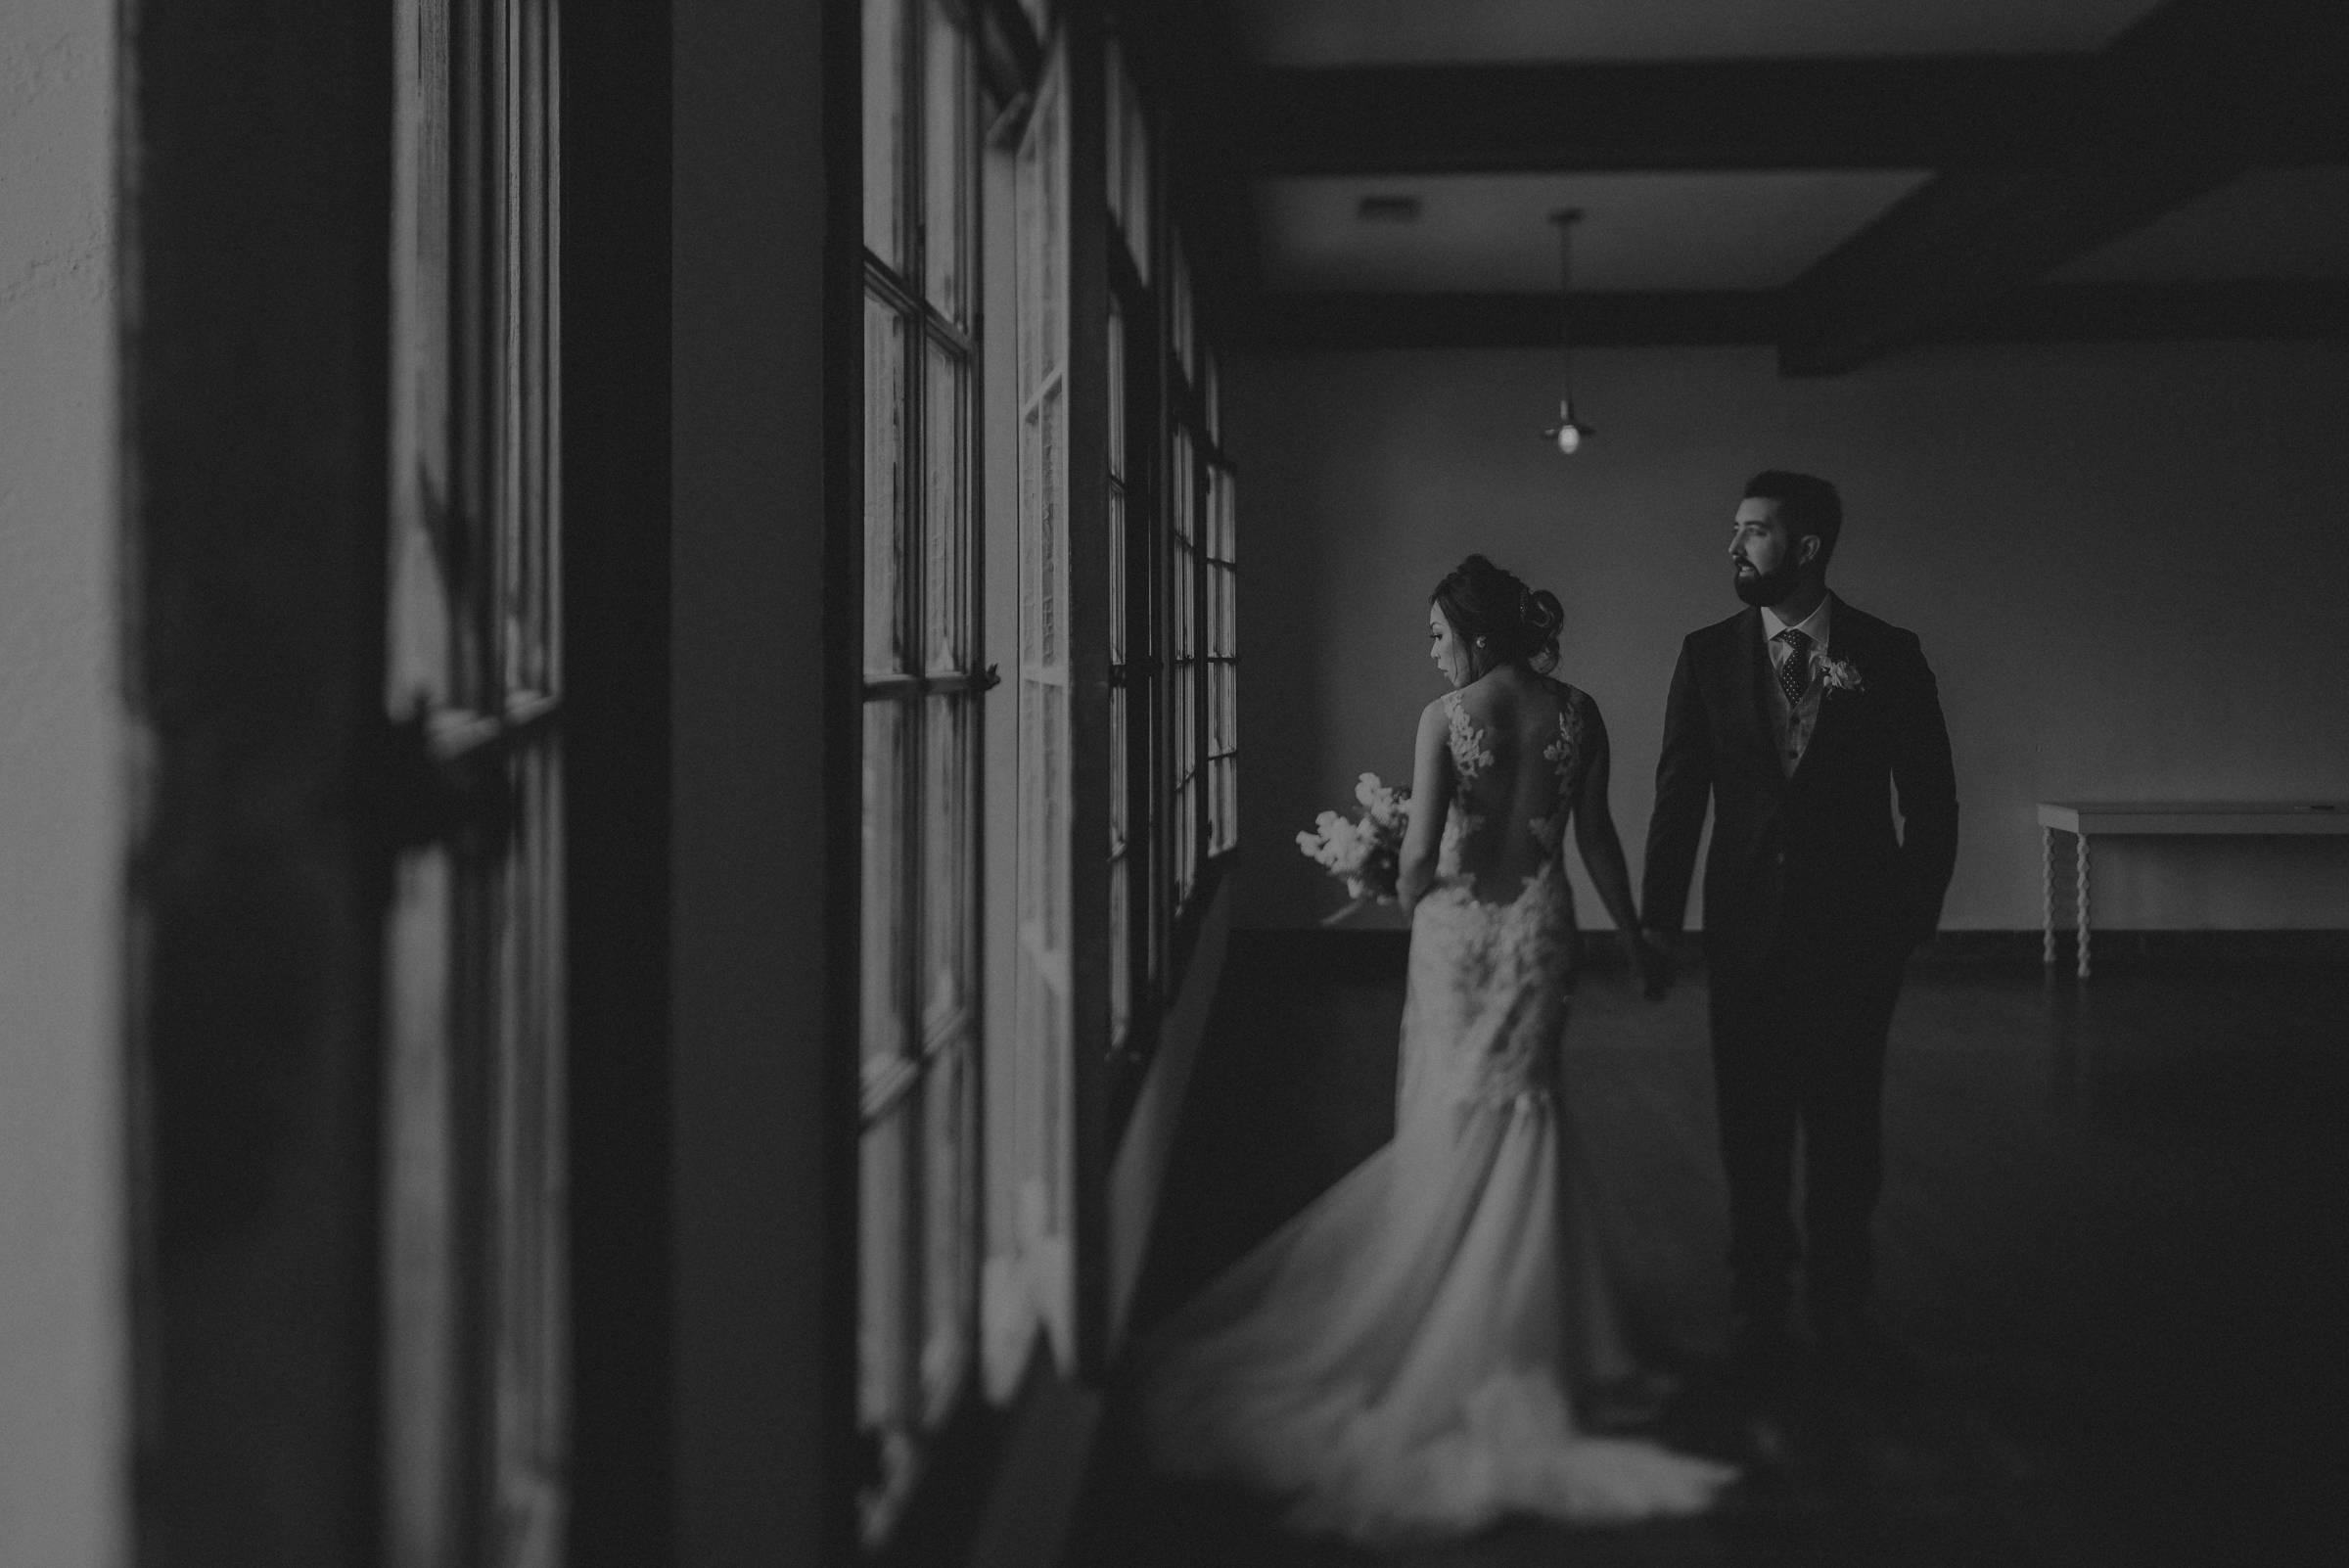 Los Angeles Wedding Photographer - IsaiahAndTaylor.com - The Ebell of Long Beach Wedding-065.jpg